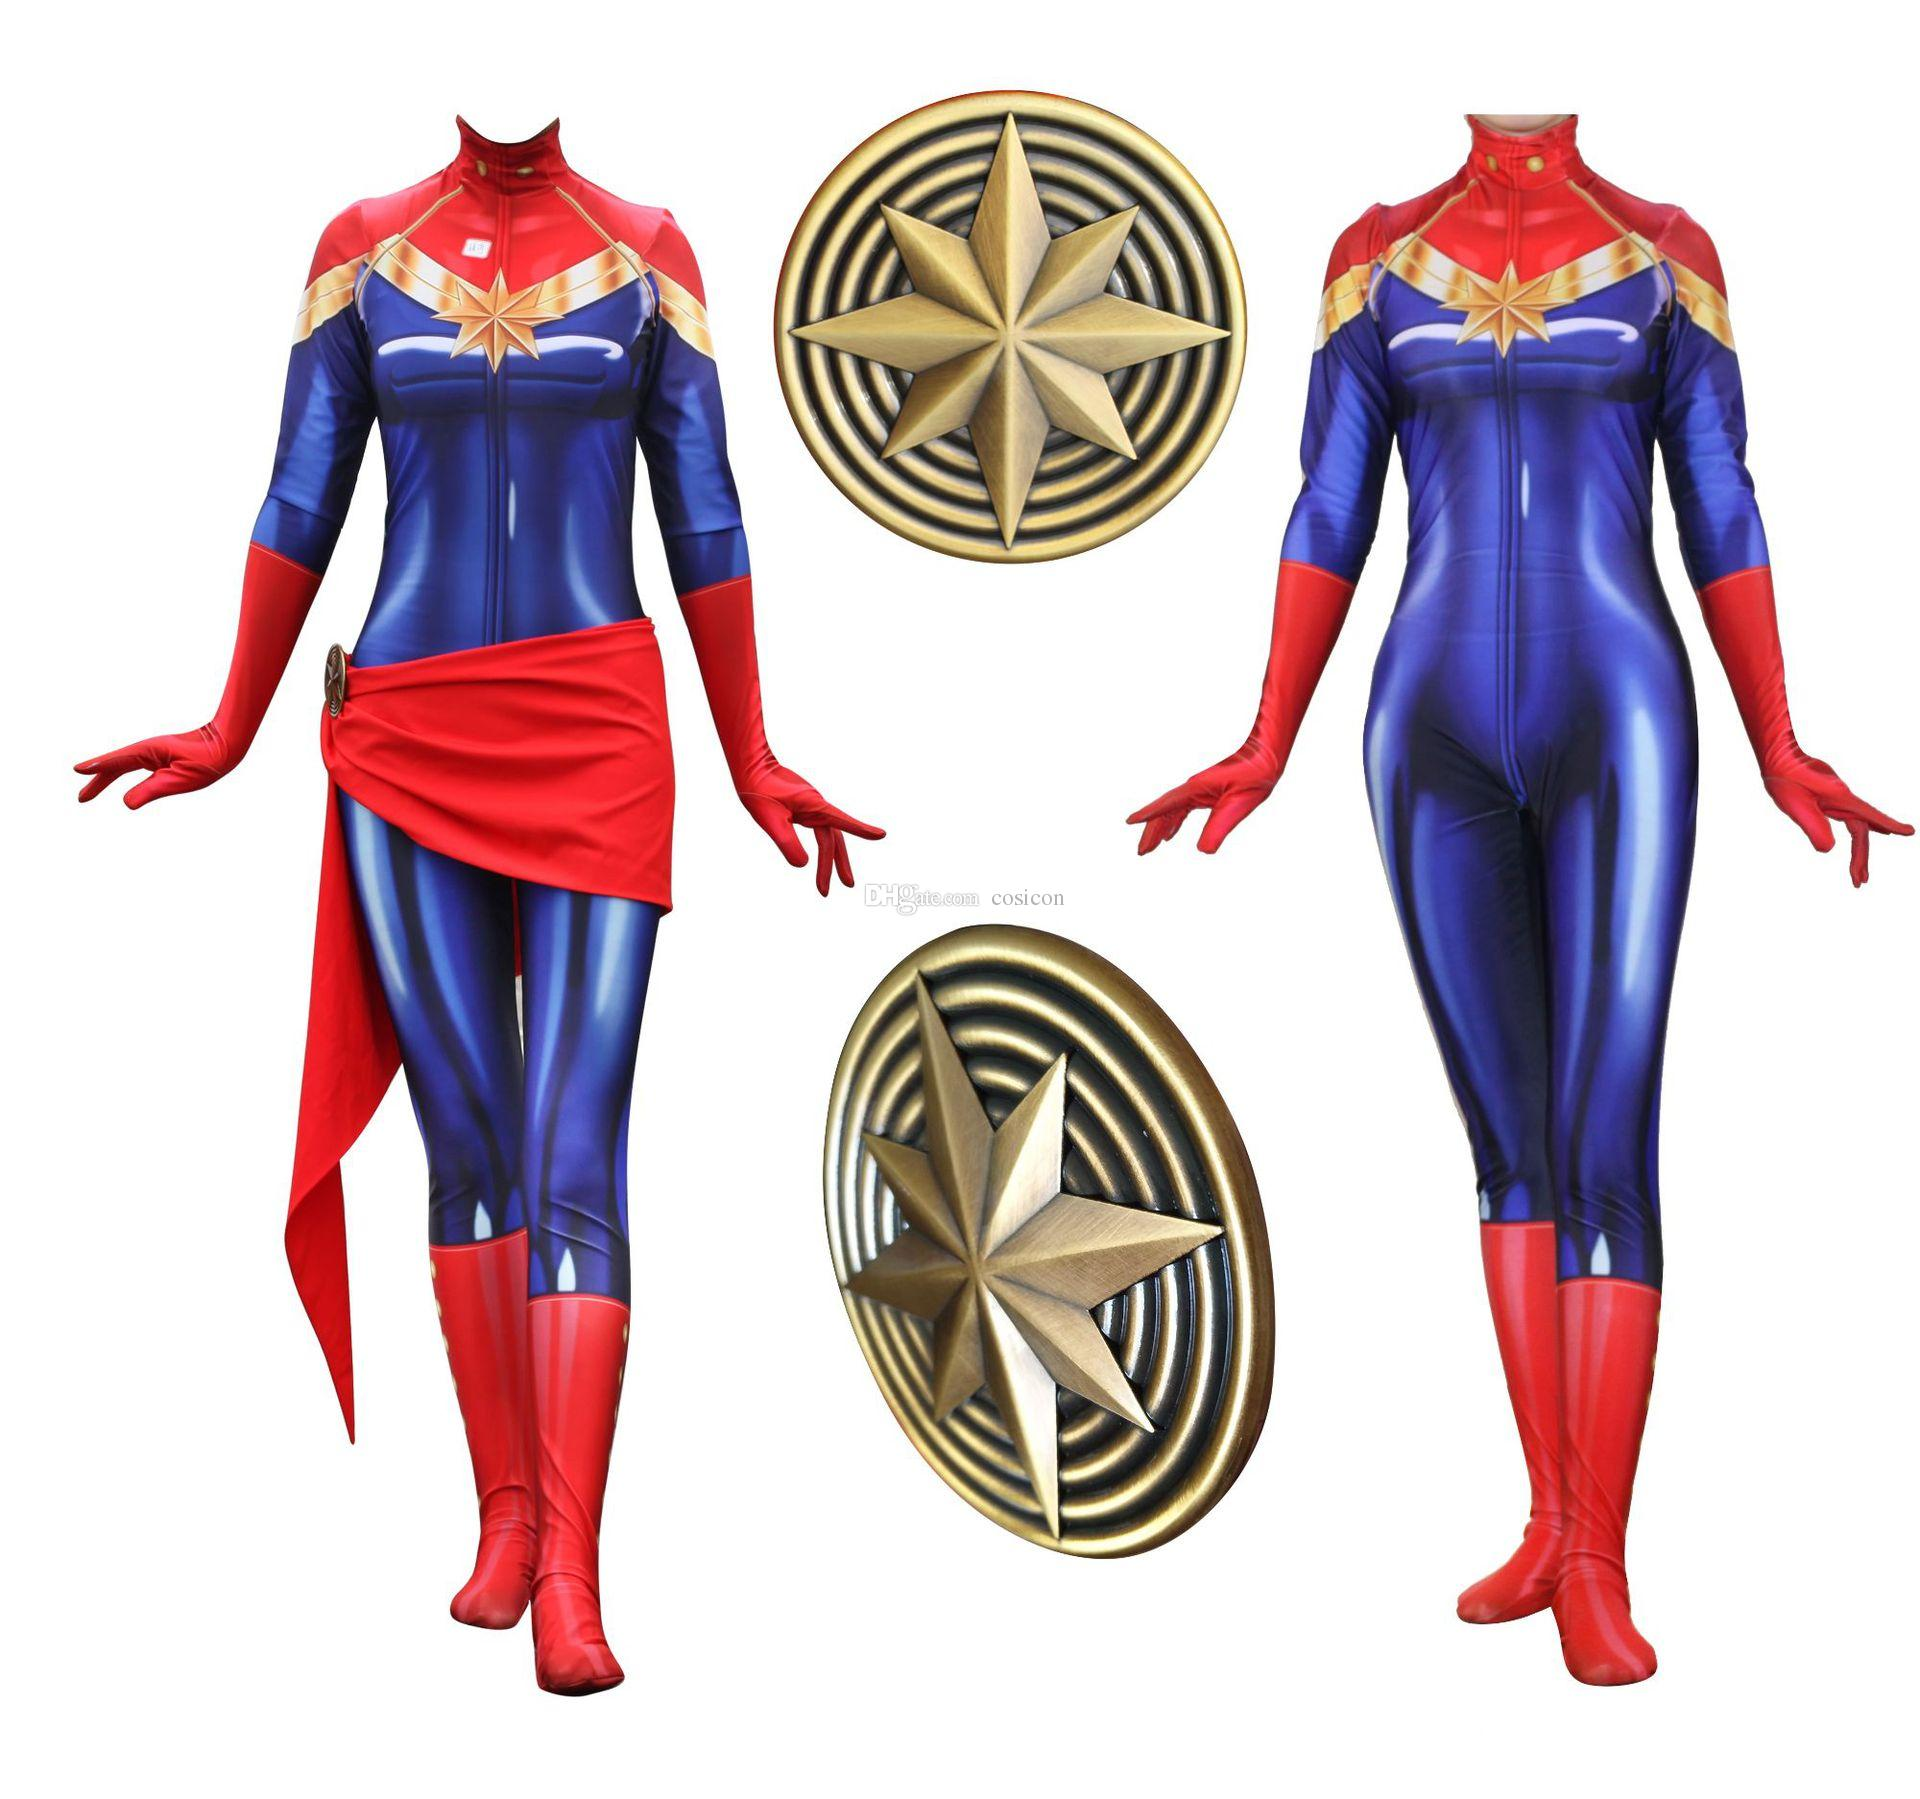 22165d56595 Women Girls  Superhero Captain Marvel Uniform Jumpsuit With Belt Badge  Carol Danvers Bodysuit Halloween Cosplay Party Costume Theatrical Costumes  Cheap ...